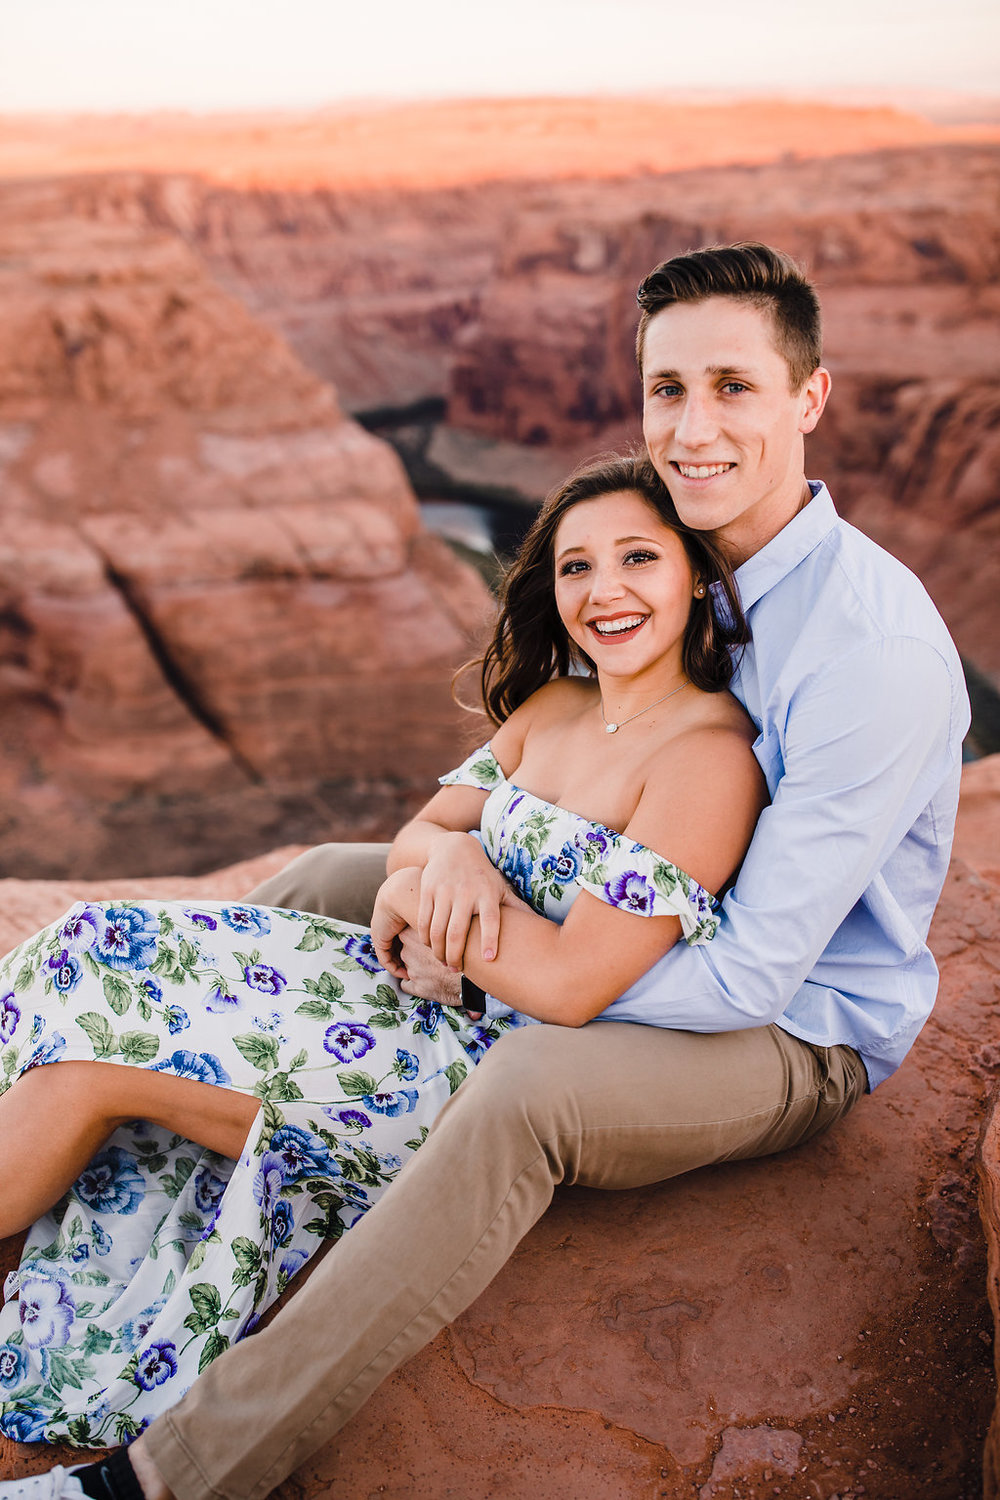 professional couples photographer grand canyon page arizona red rocks floral dress cuddling